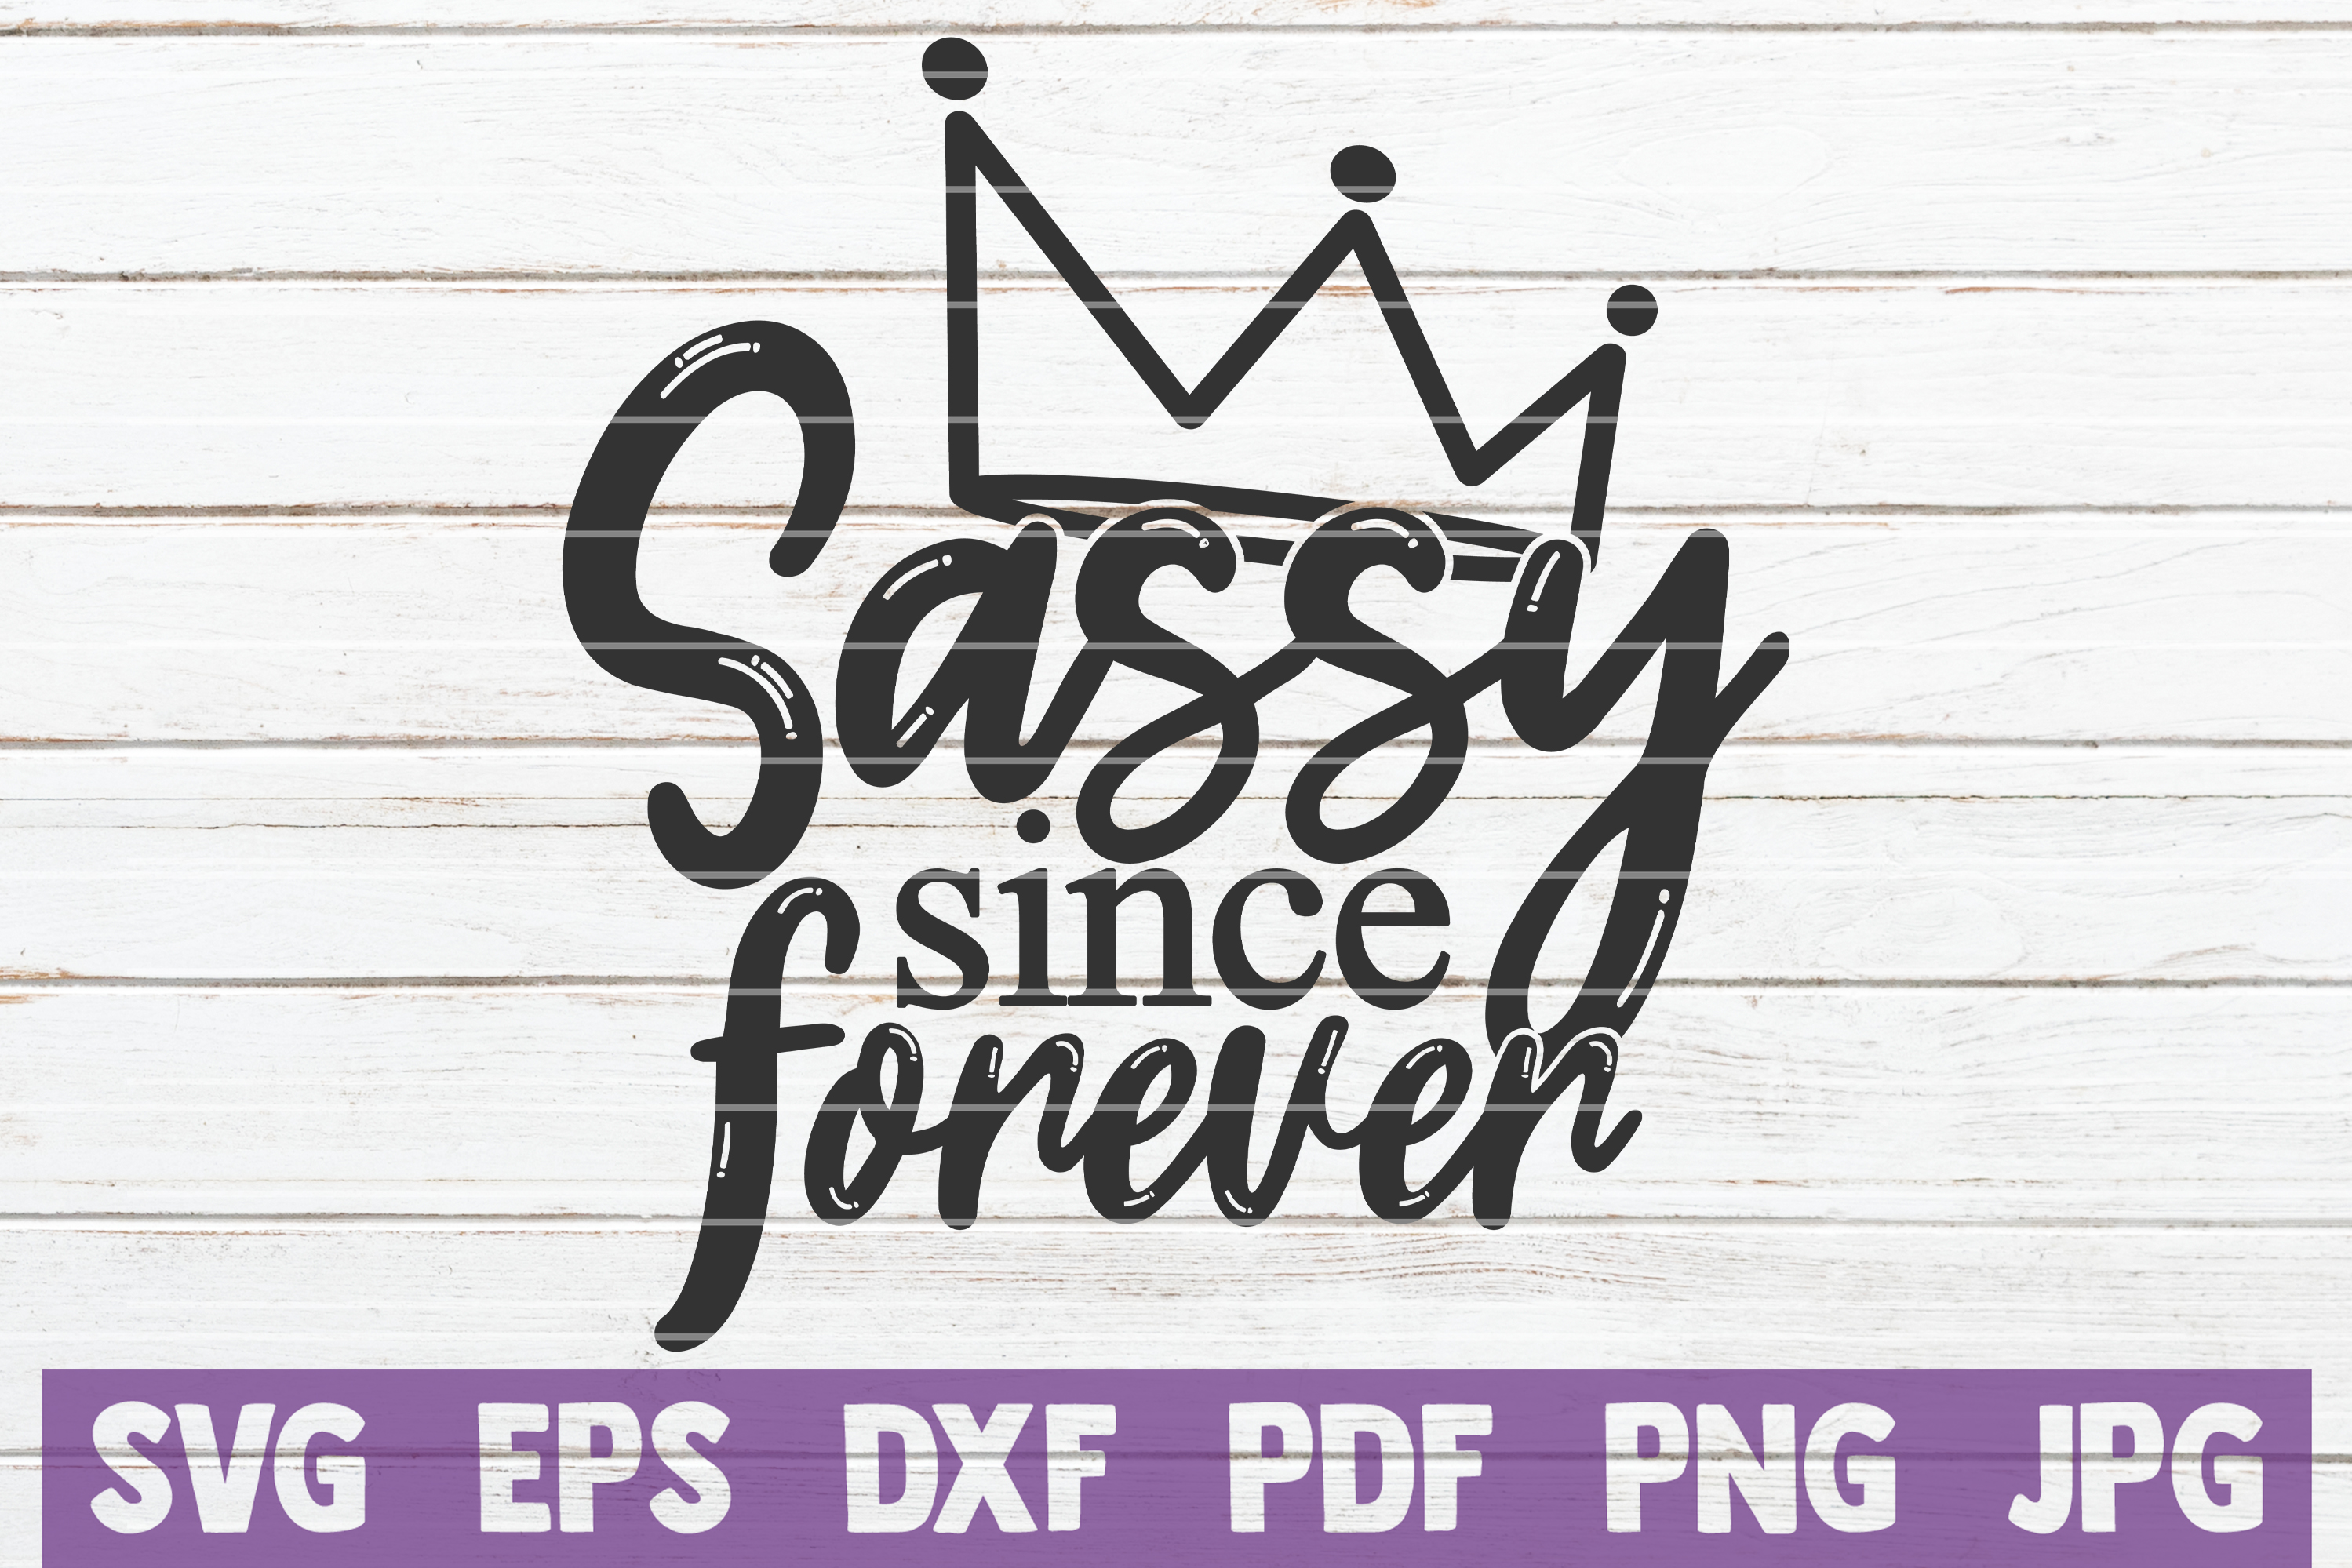 Download Free Sassy Since Forever Graphic By Mintymarshmallows Creative Fabrica for Cricut Explore, Silhouette and other cutting machines.